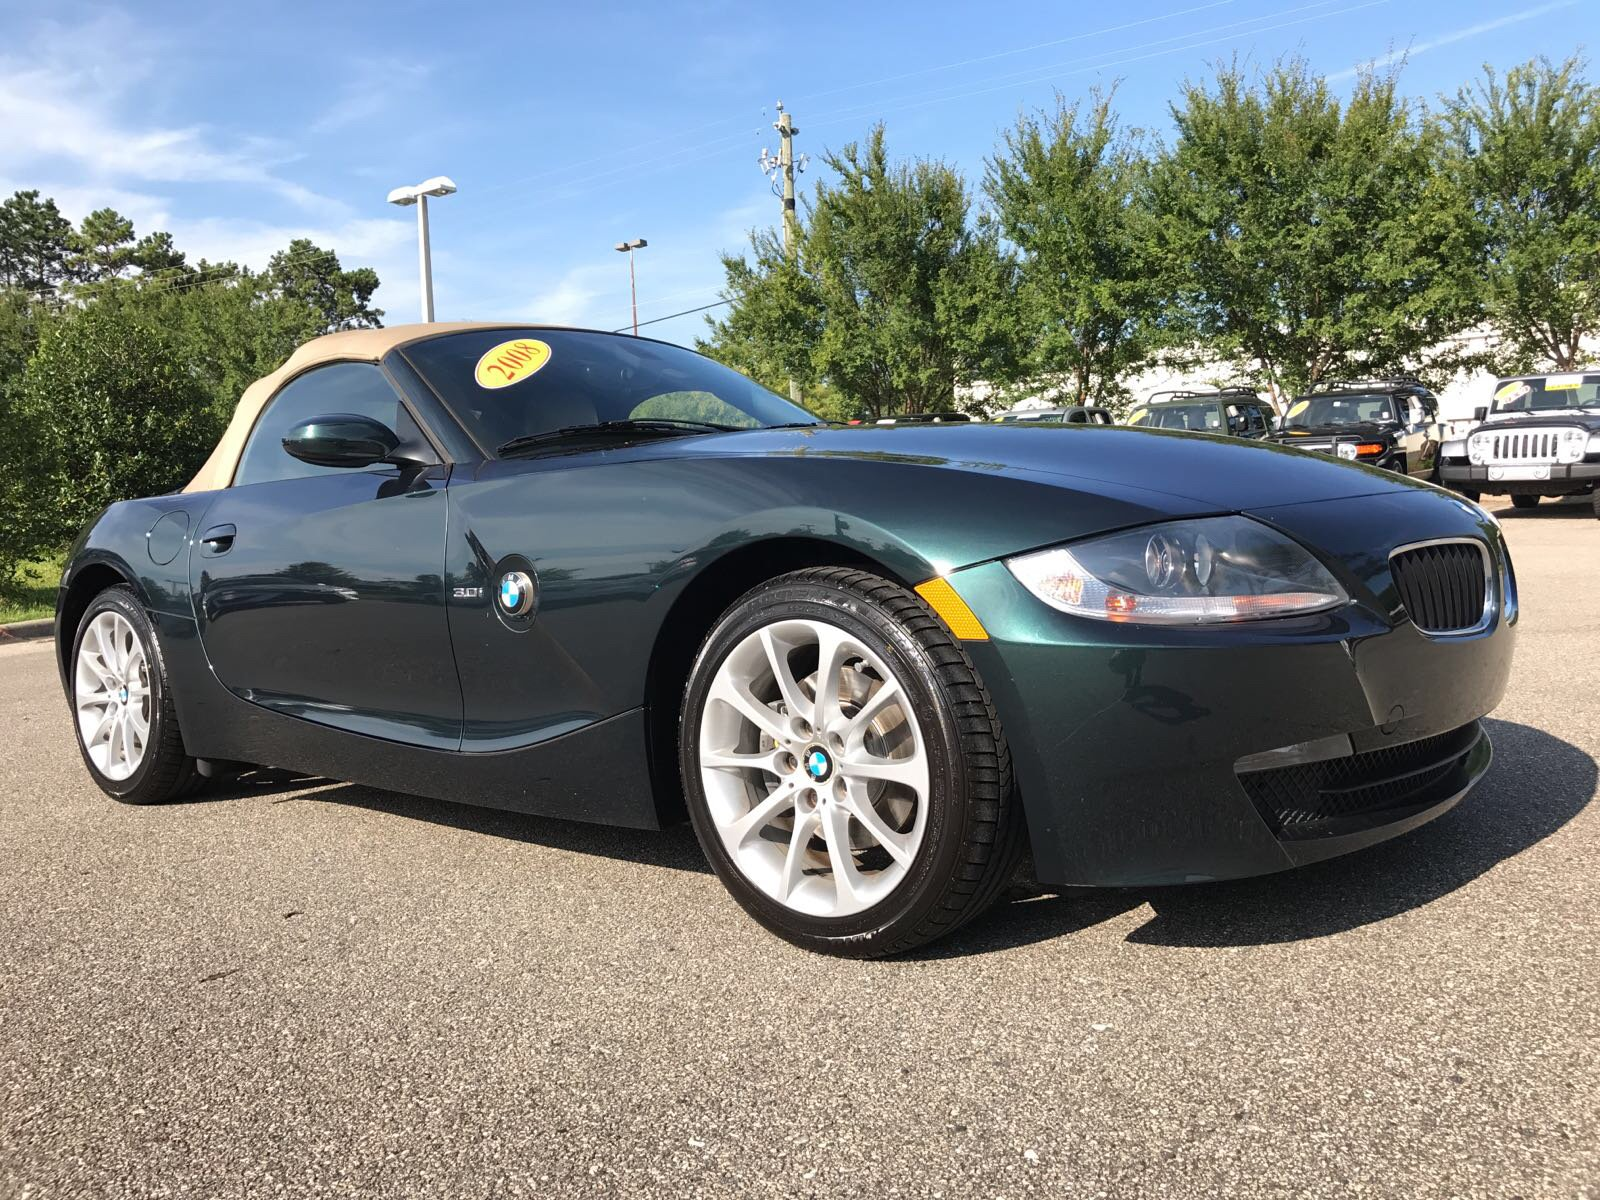 PreOwned 2008 BMW Z4 30i Convertible in Tallahassee 13405PA